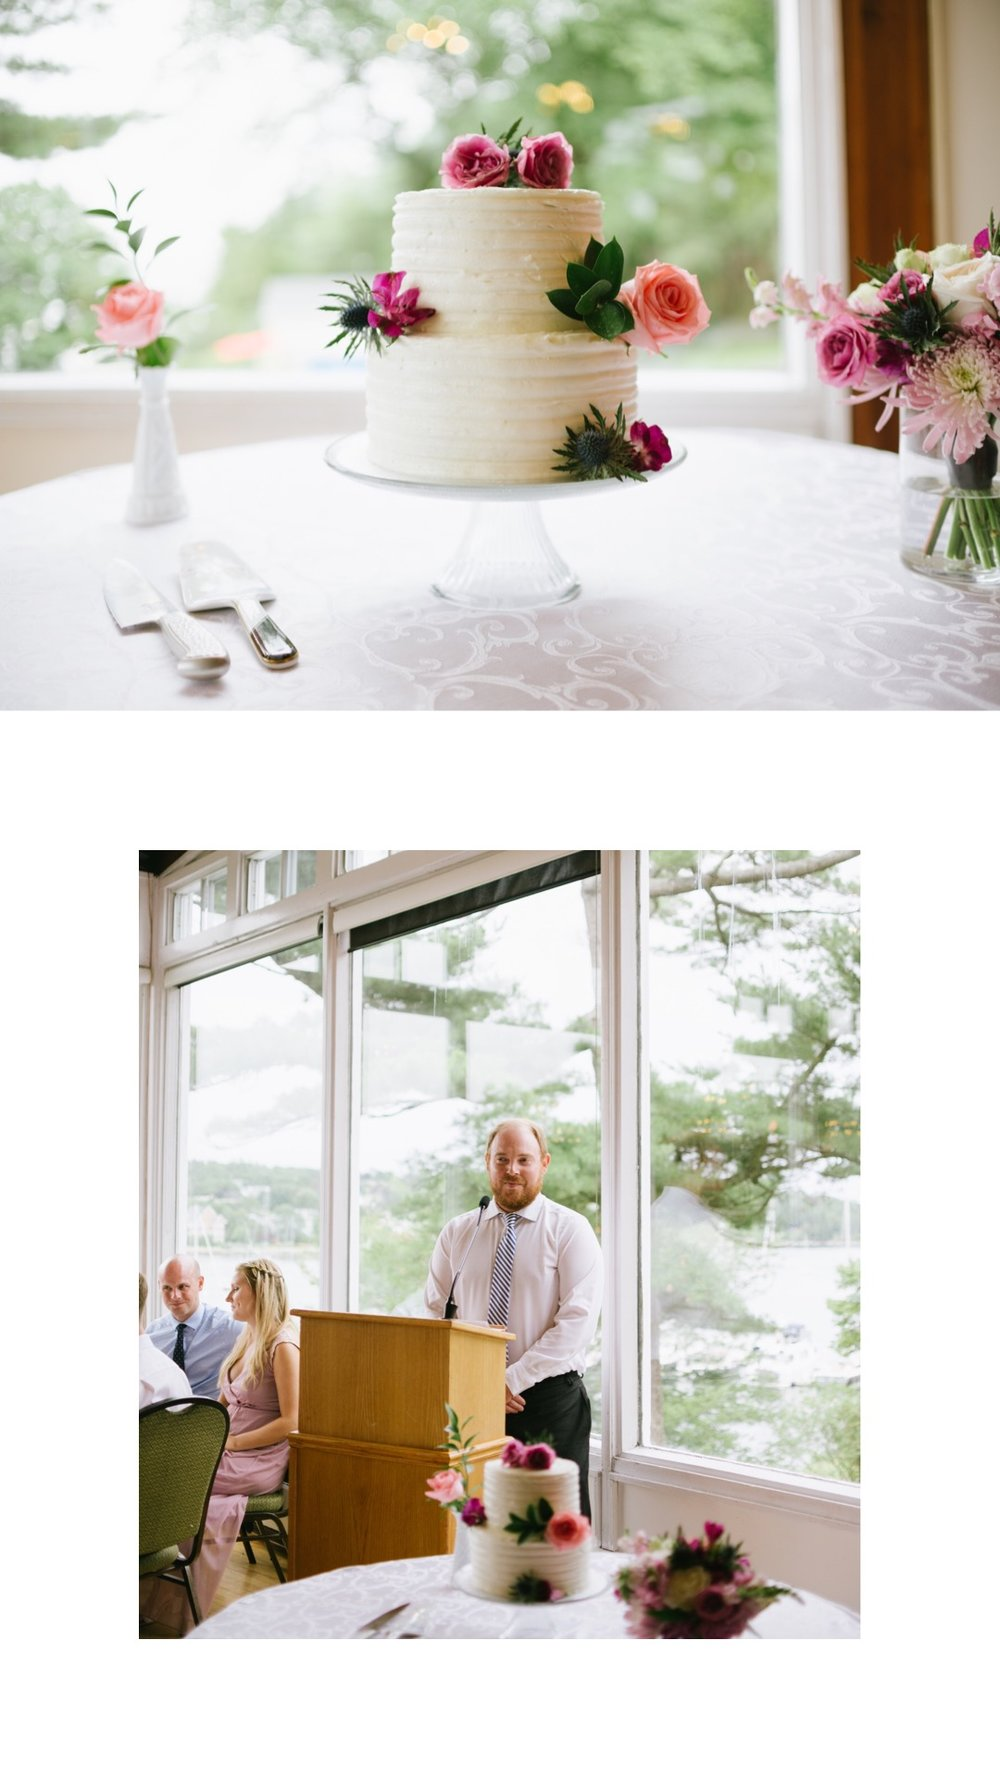 Martina & Scott Halifax Wedding Photographer - Sinead Dubeau Photography 25